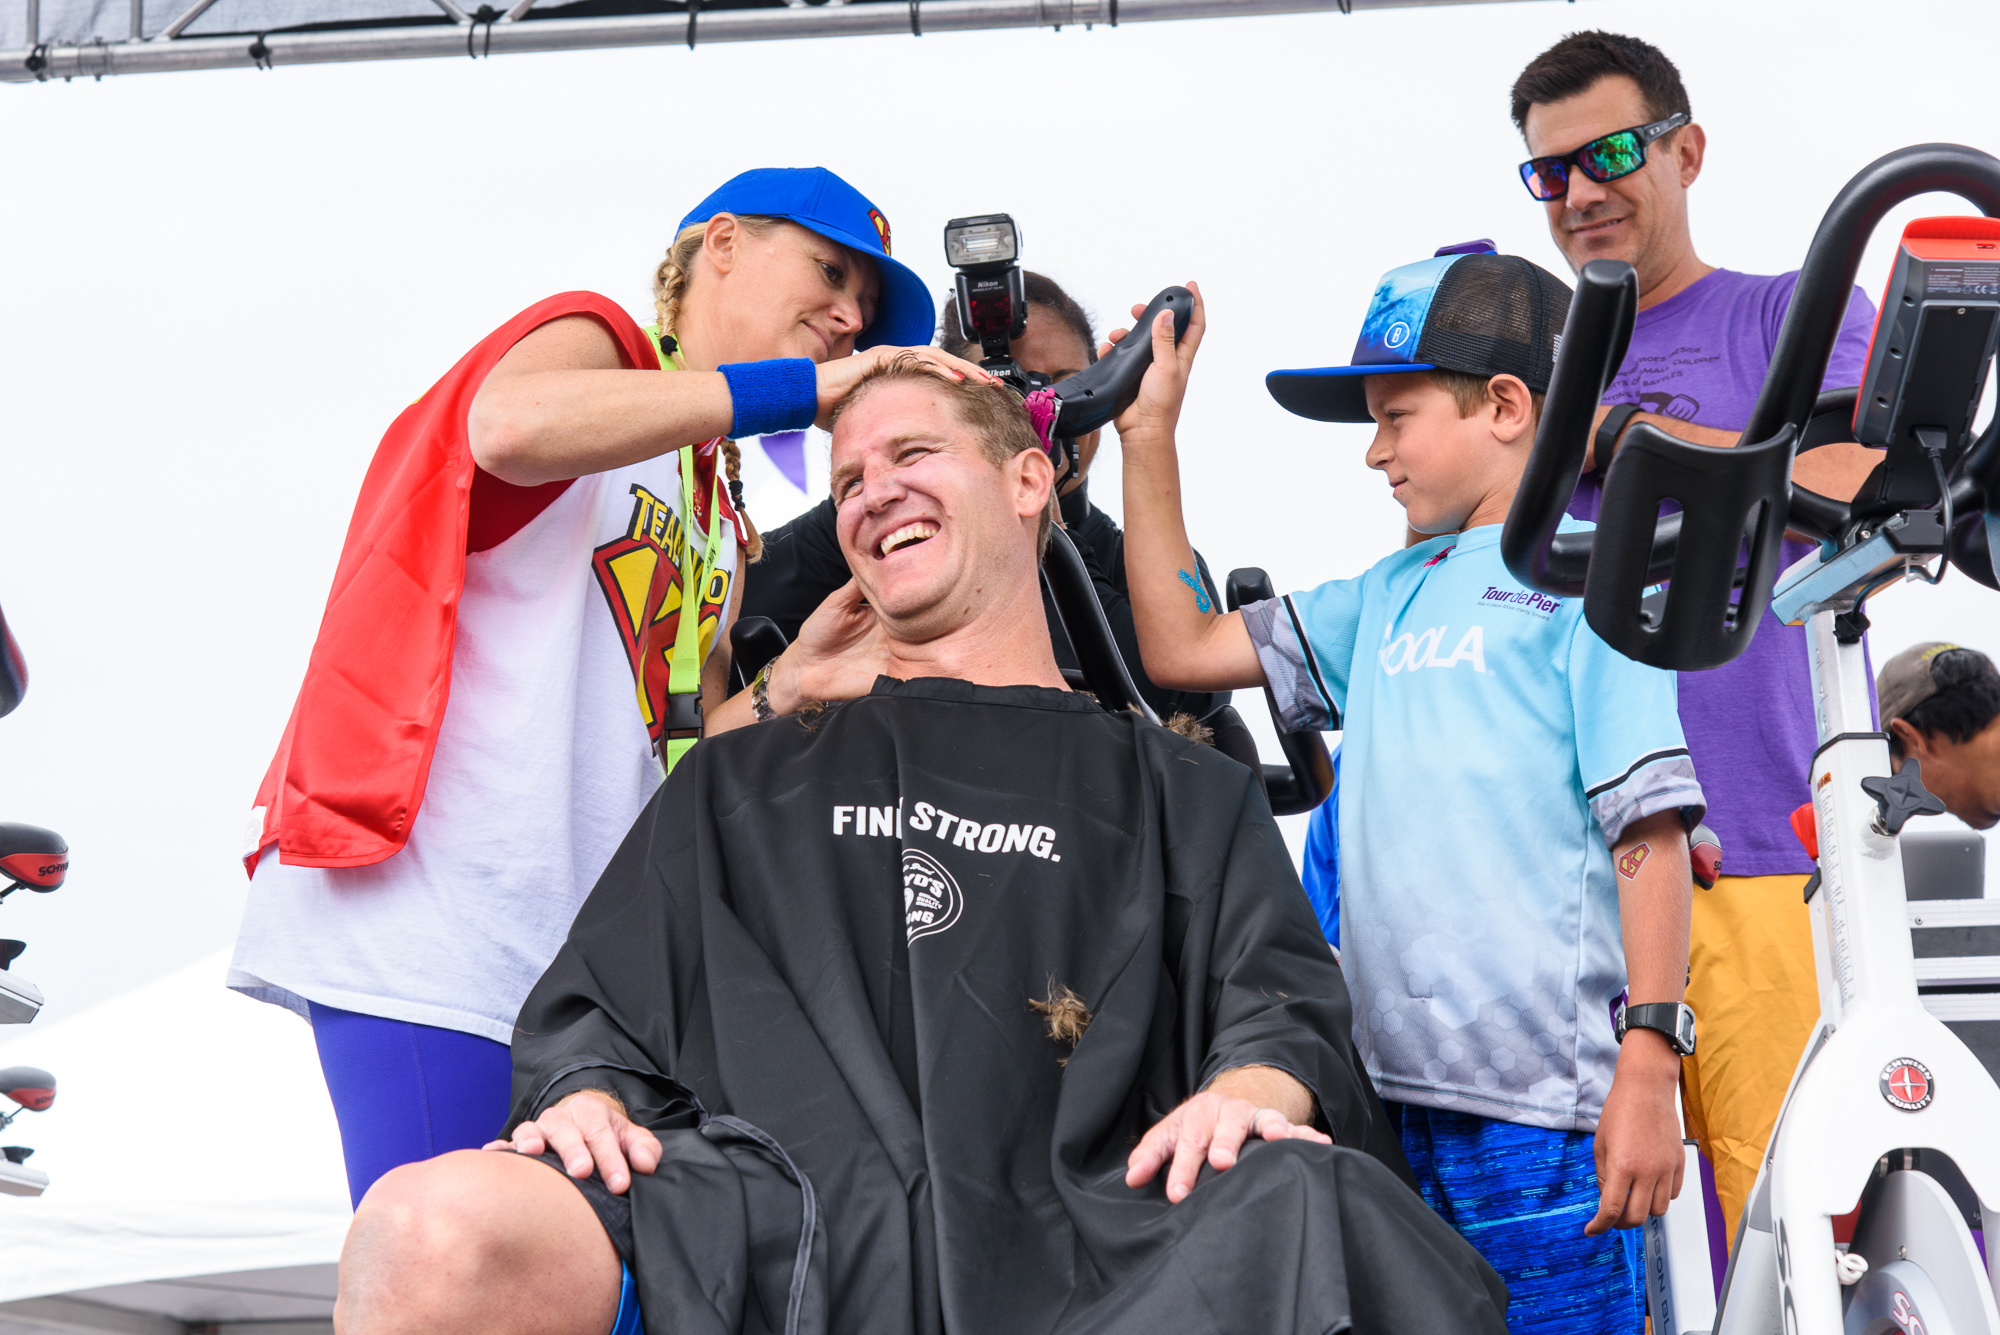 Chinny helping to shave co-founder Heath's head to celebrate breaking $1 million fundraised in 2016!